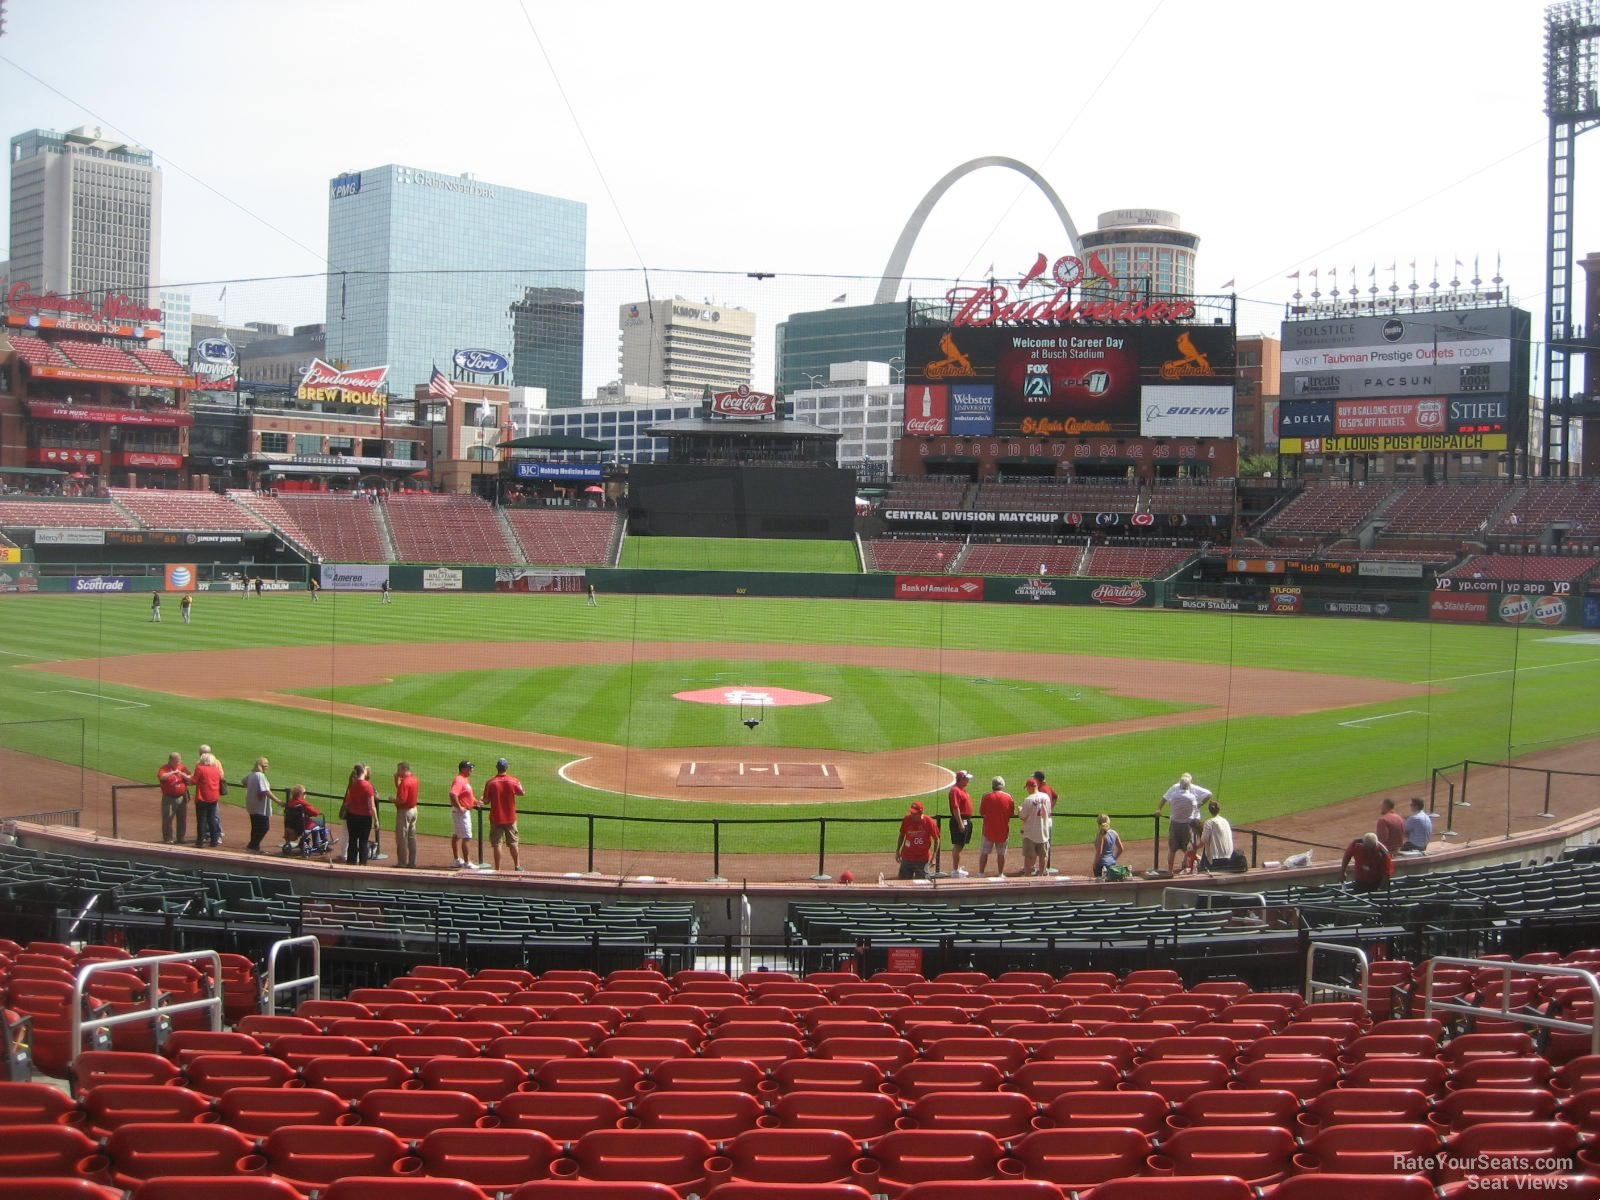 Busch Stadium Section 150 - RateYourSeats.com